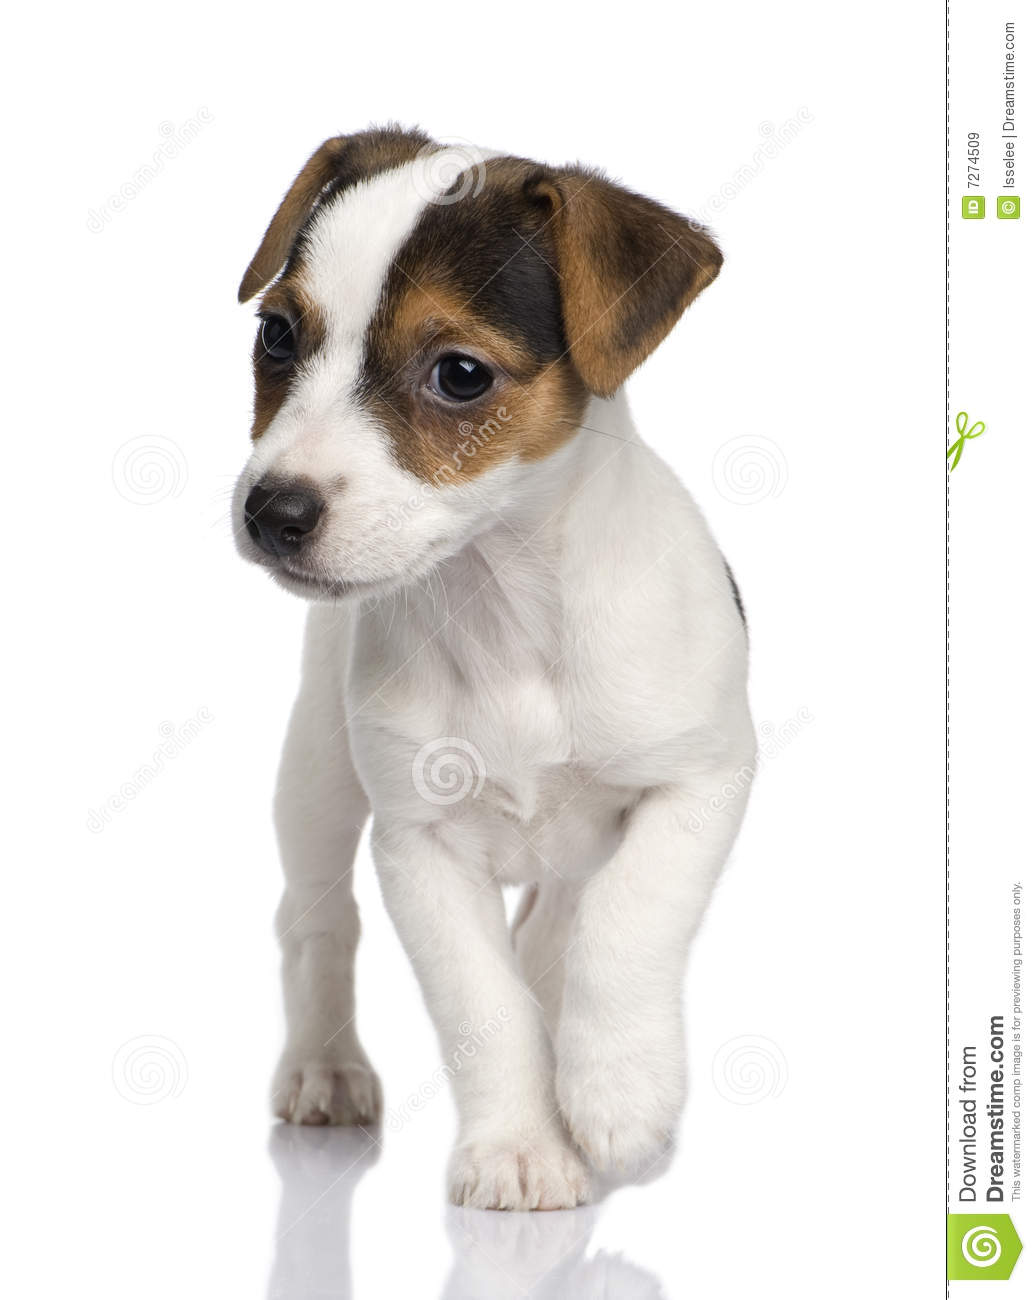 puppy jack russell (8 weeks) stock image - image of purebred